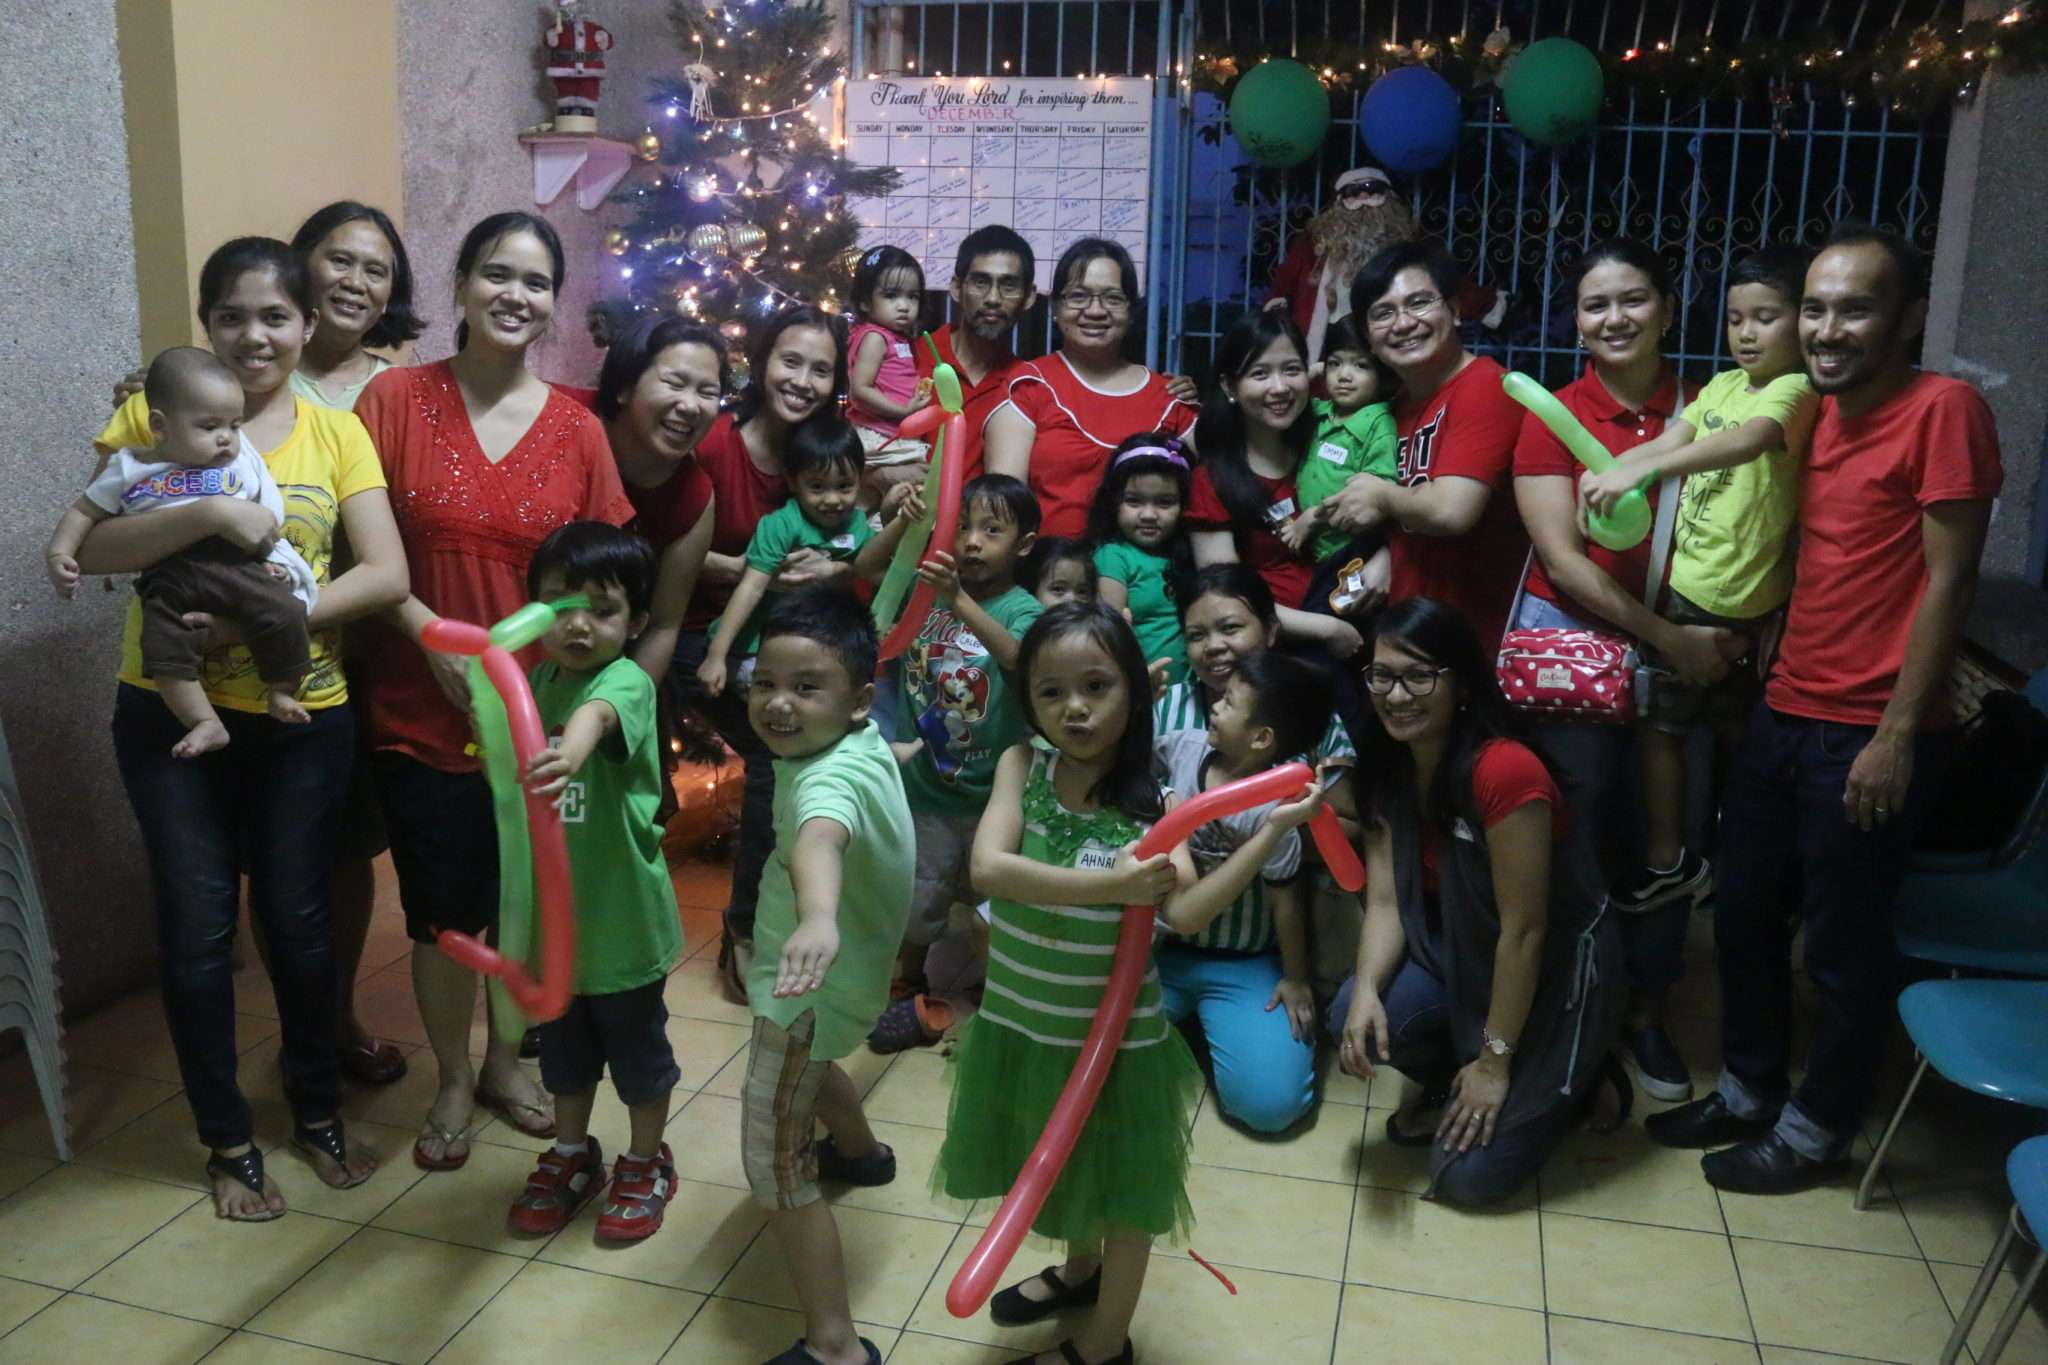 The families of Team L4! :)